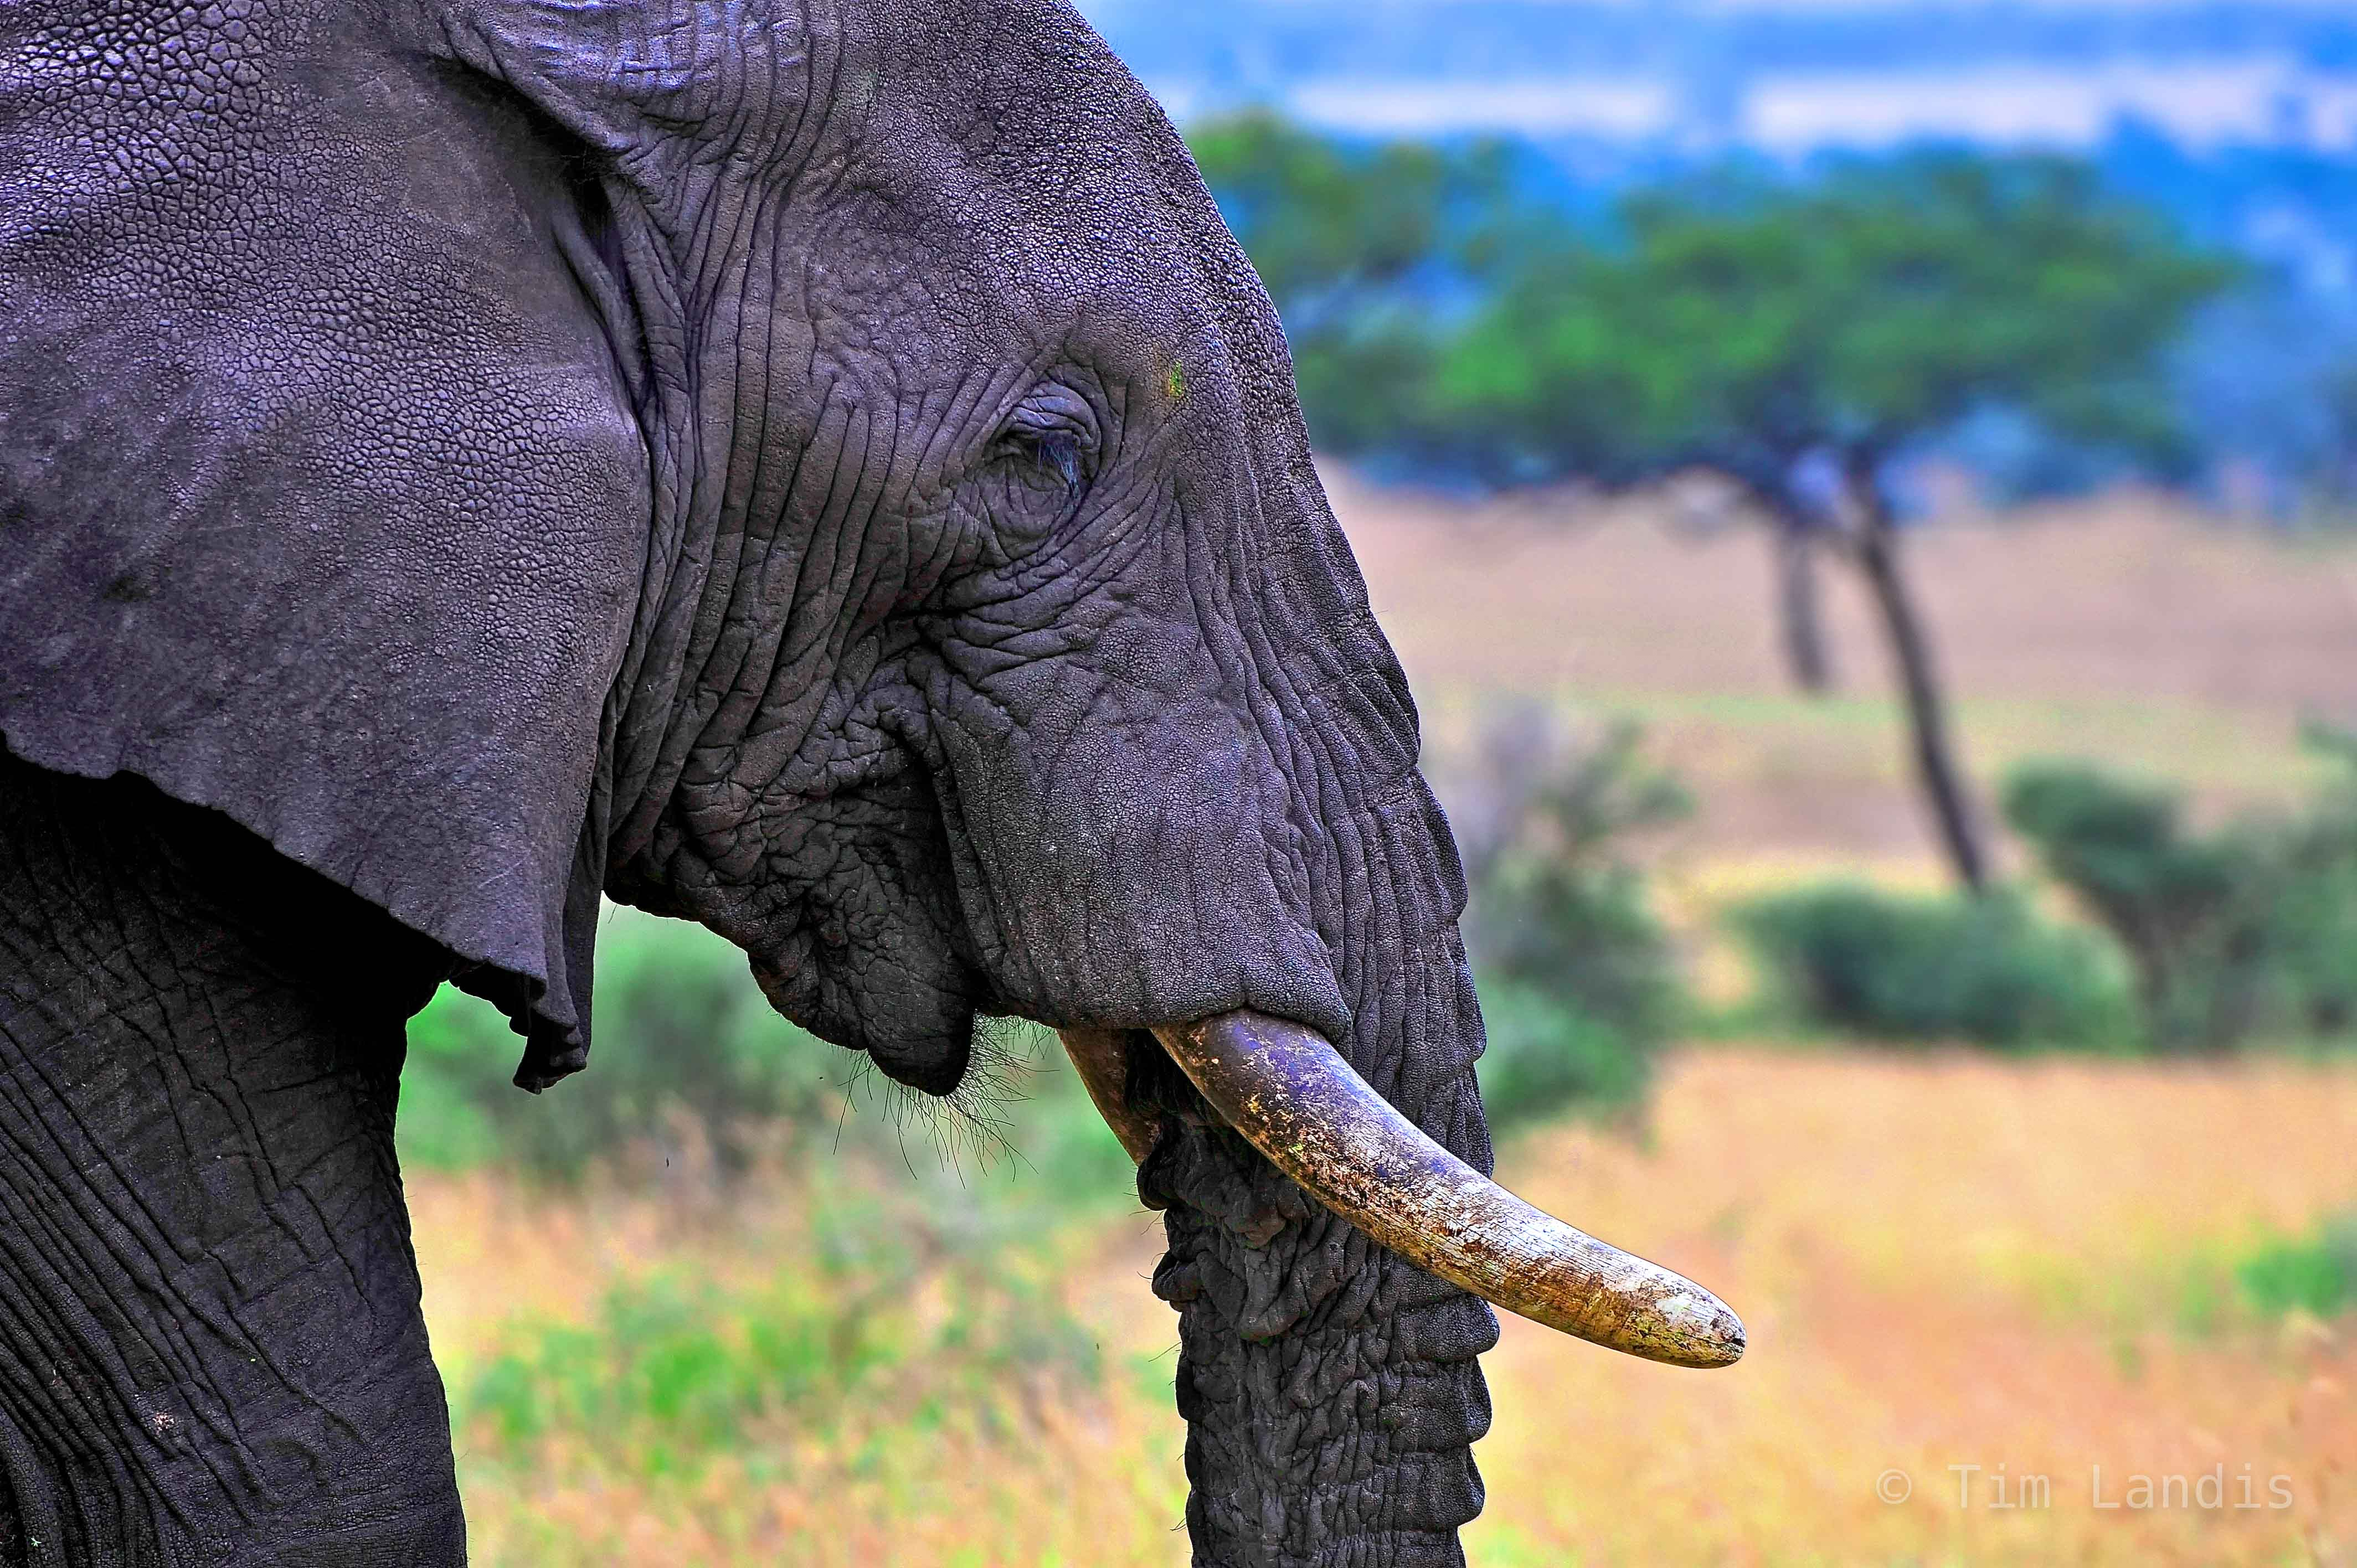 an elephant walks by as if in deep thought, photo